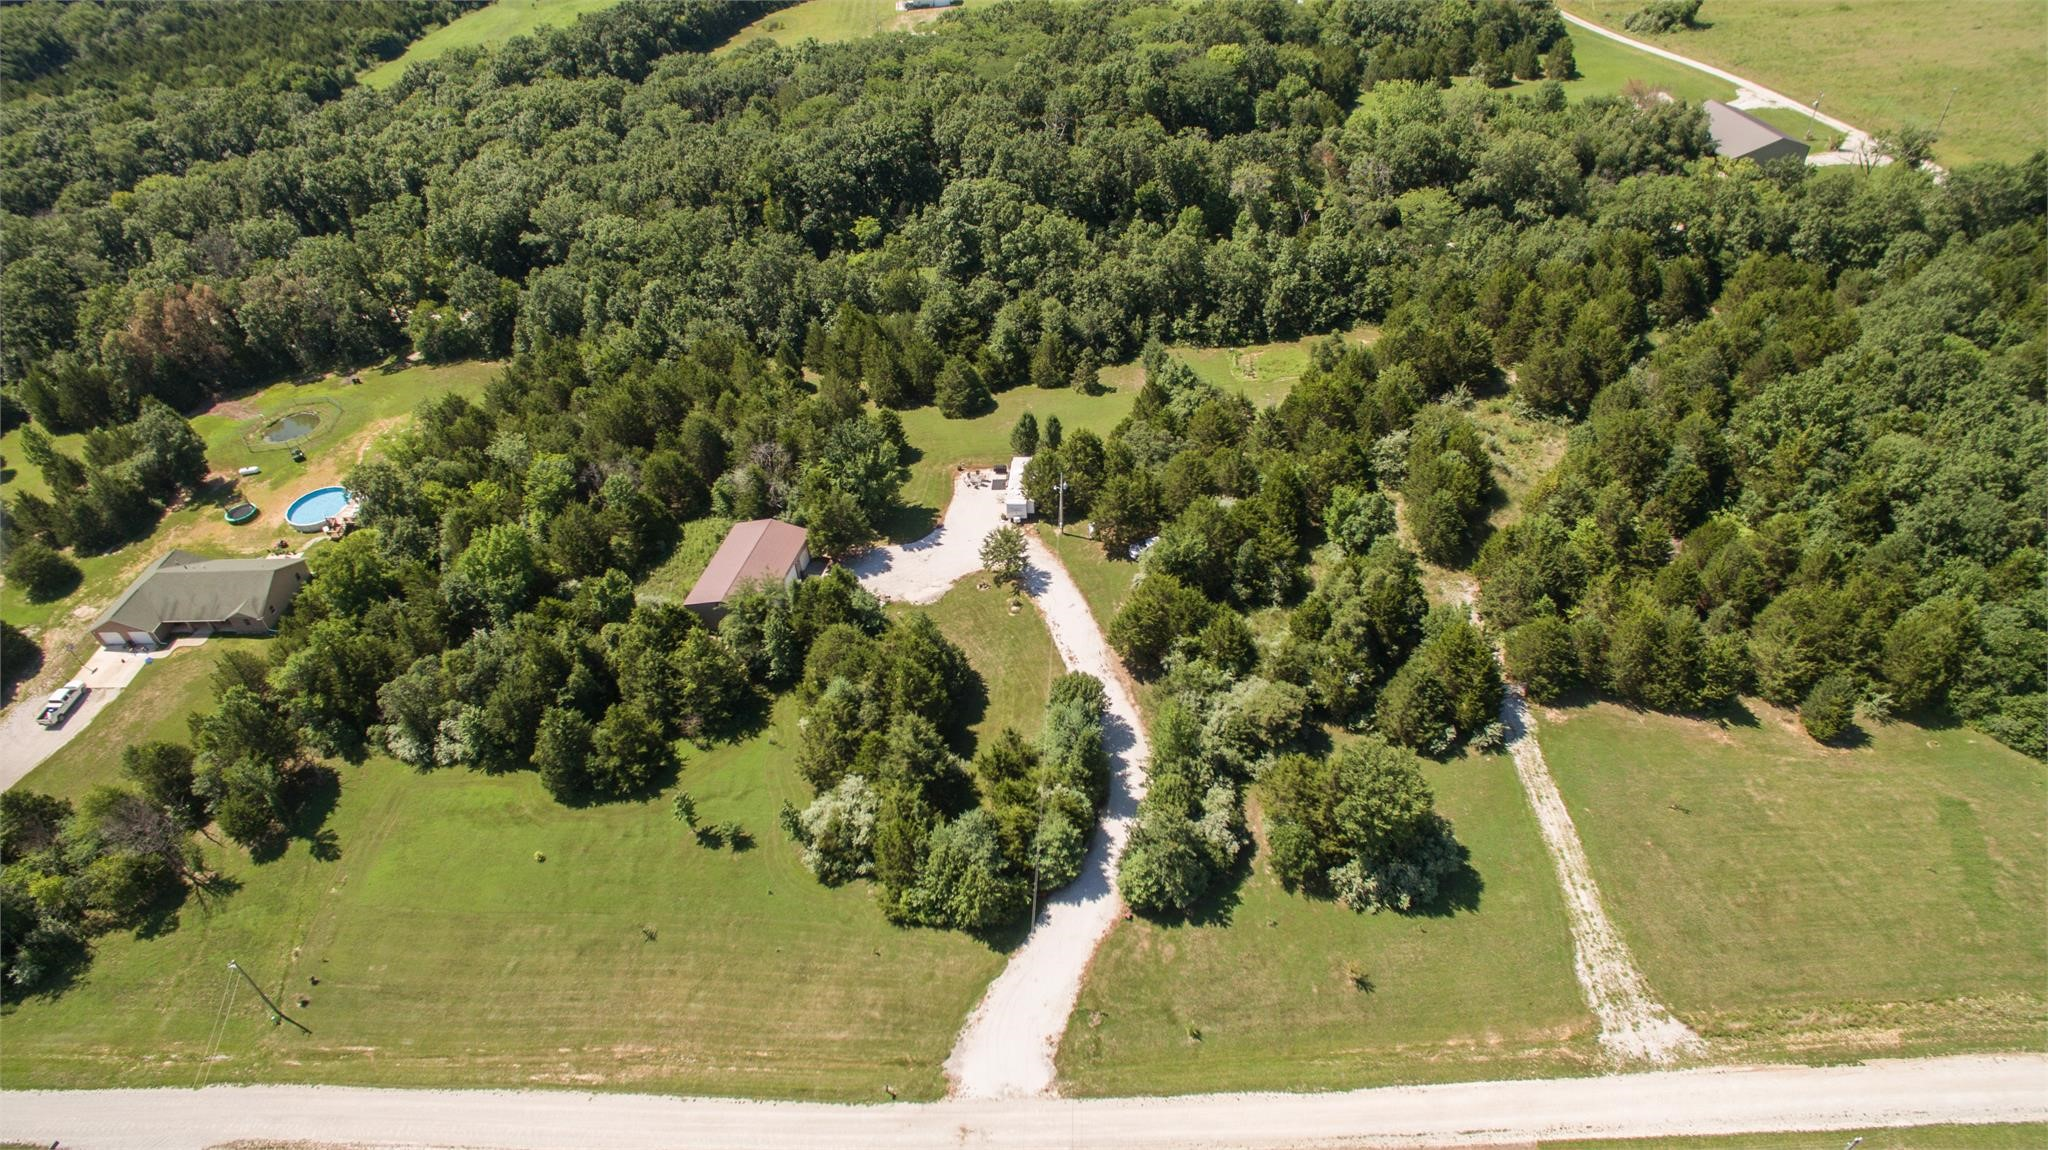 3 acres, Building/Camping Site